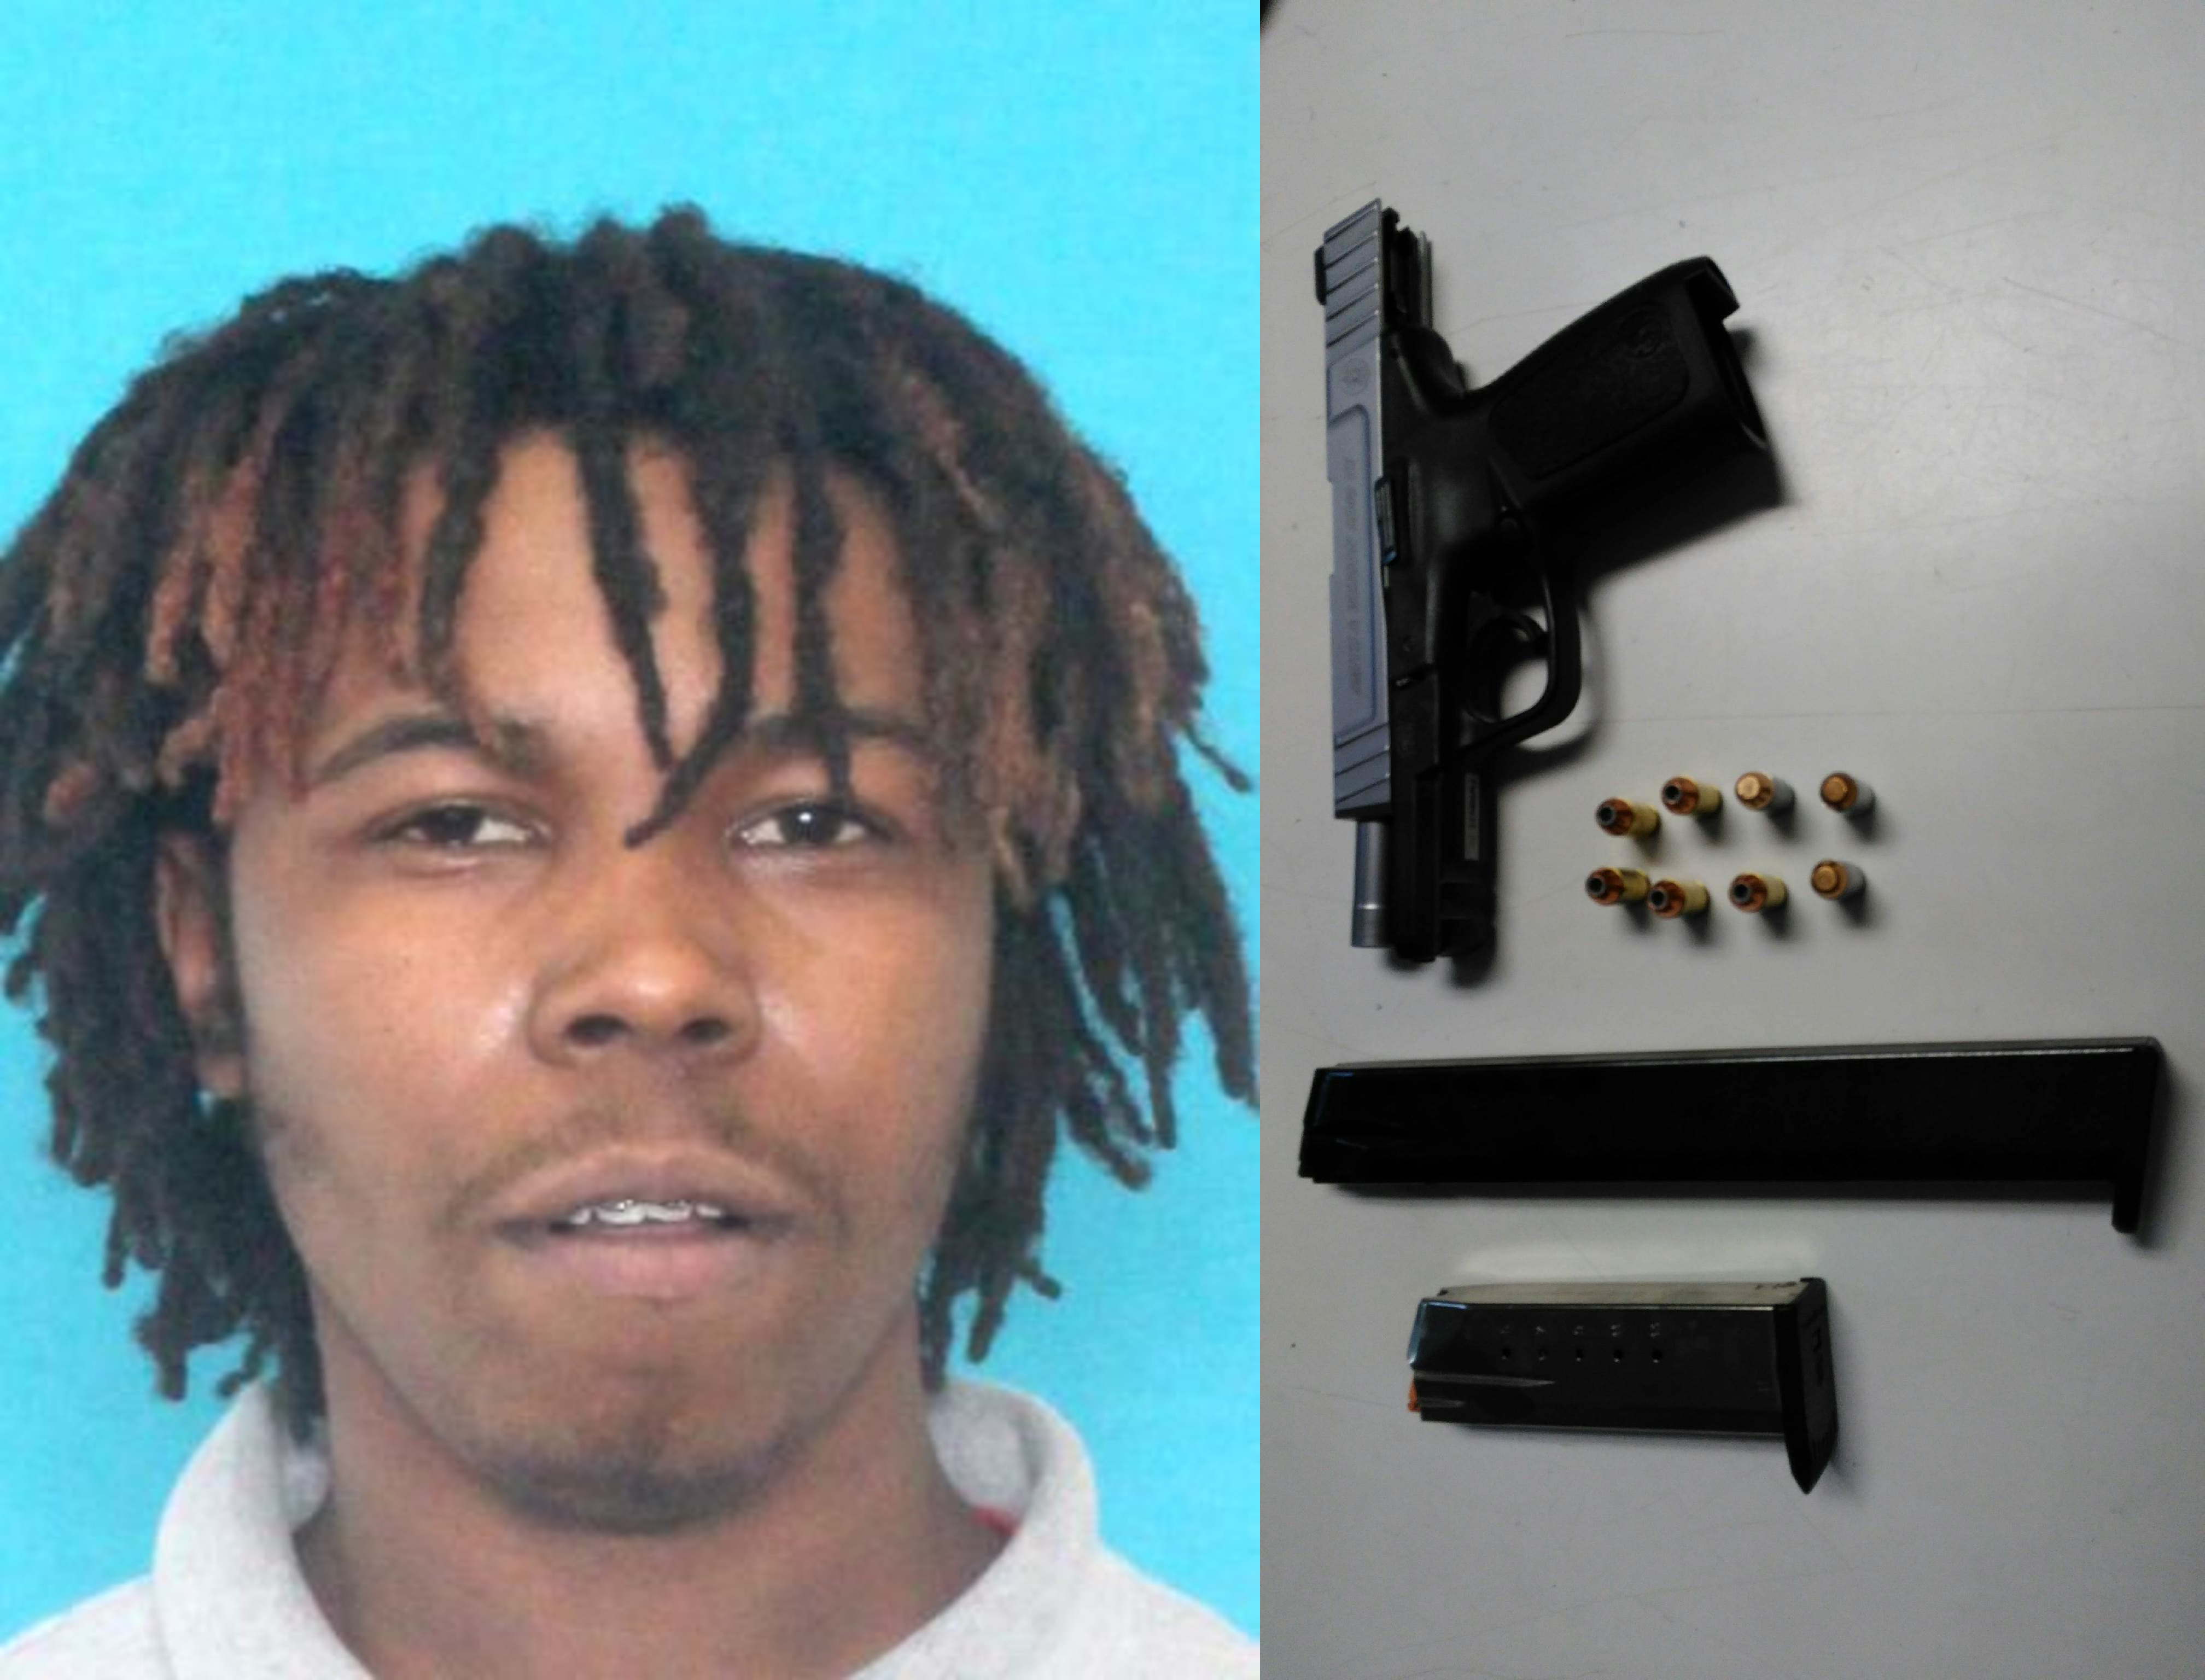 Suspect Arrested for Aggravated Battery by Shooting on Michoud